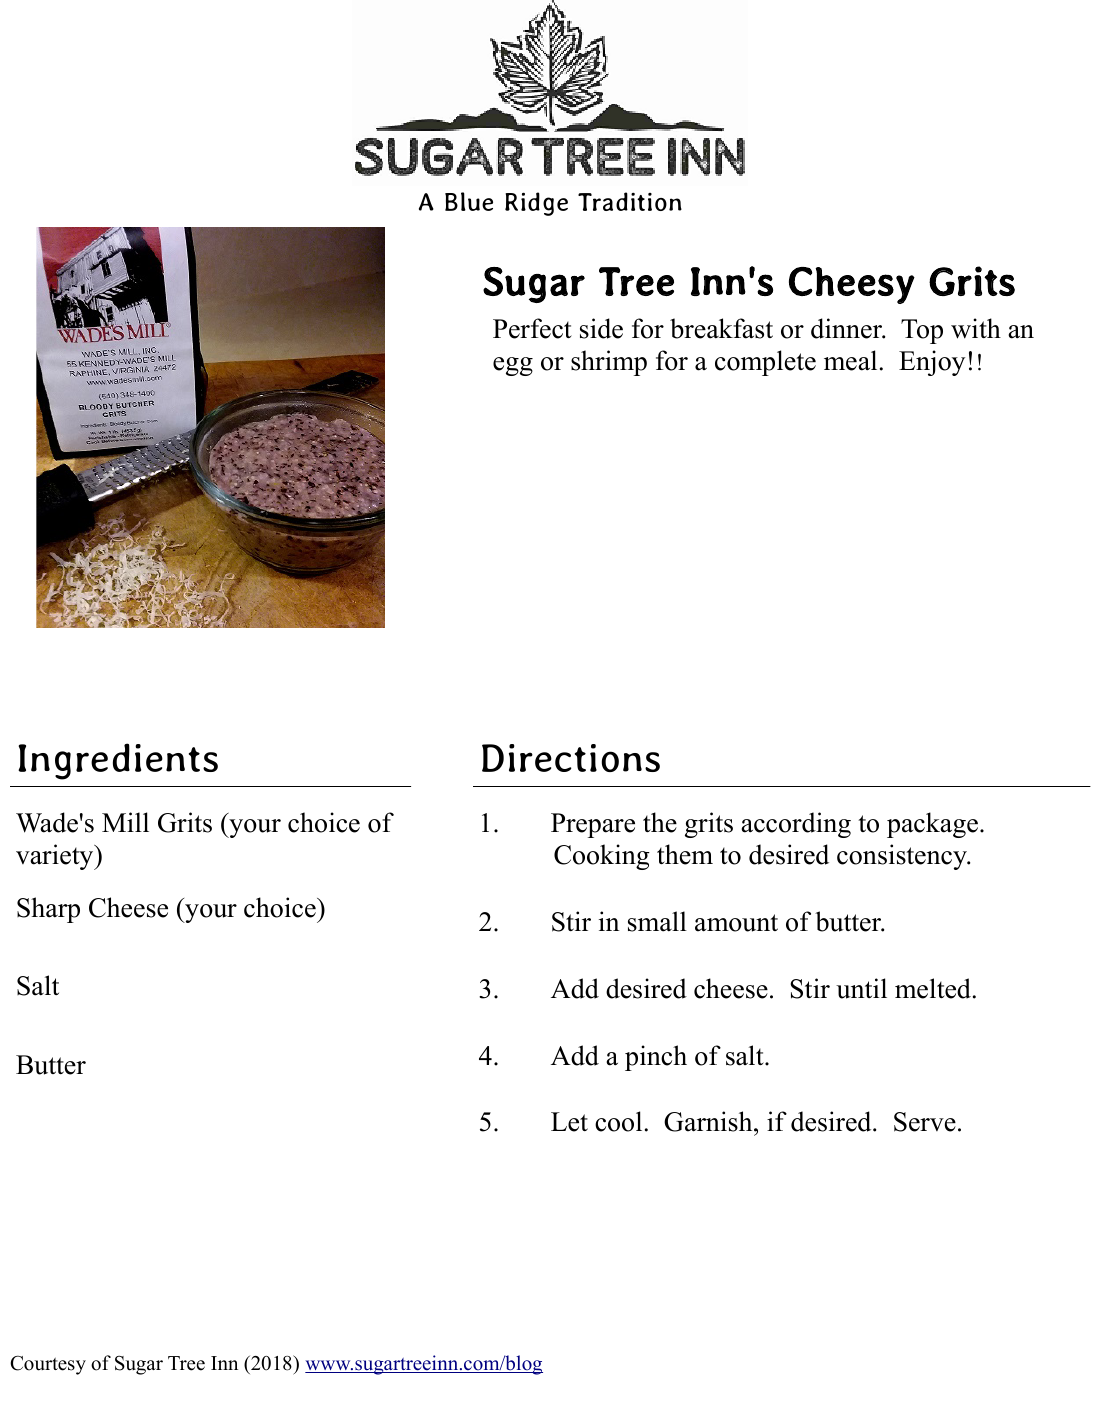 Sugar Tree Inn's recipe for cheesy grits